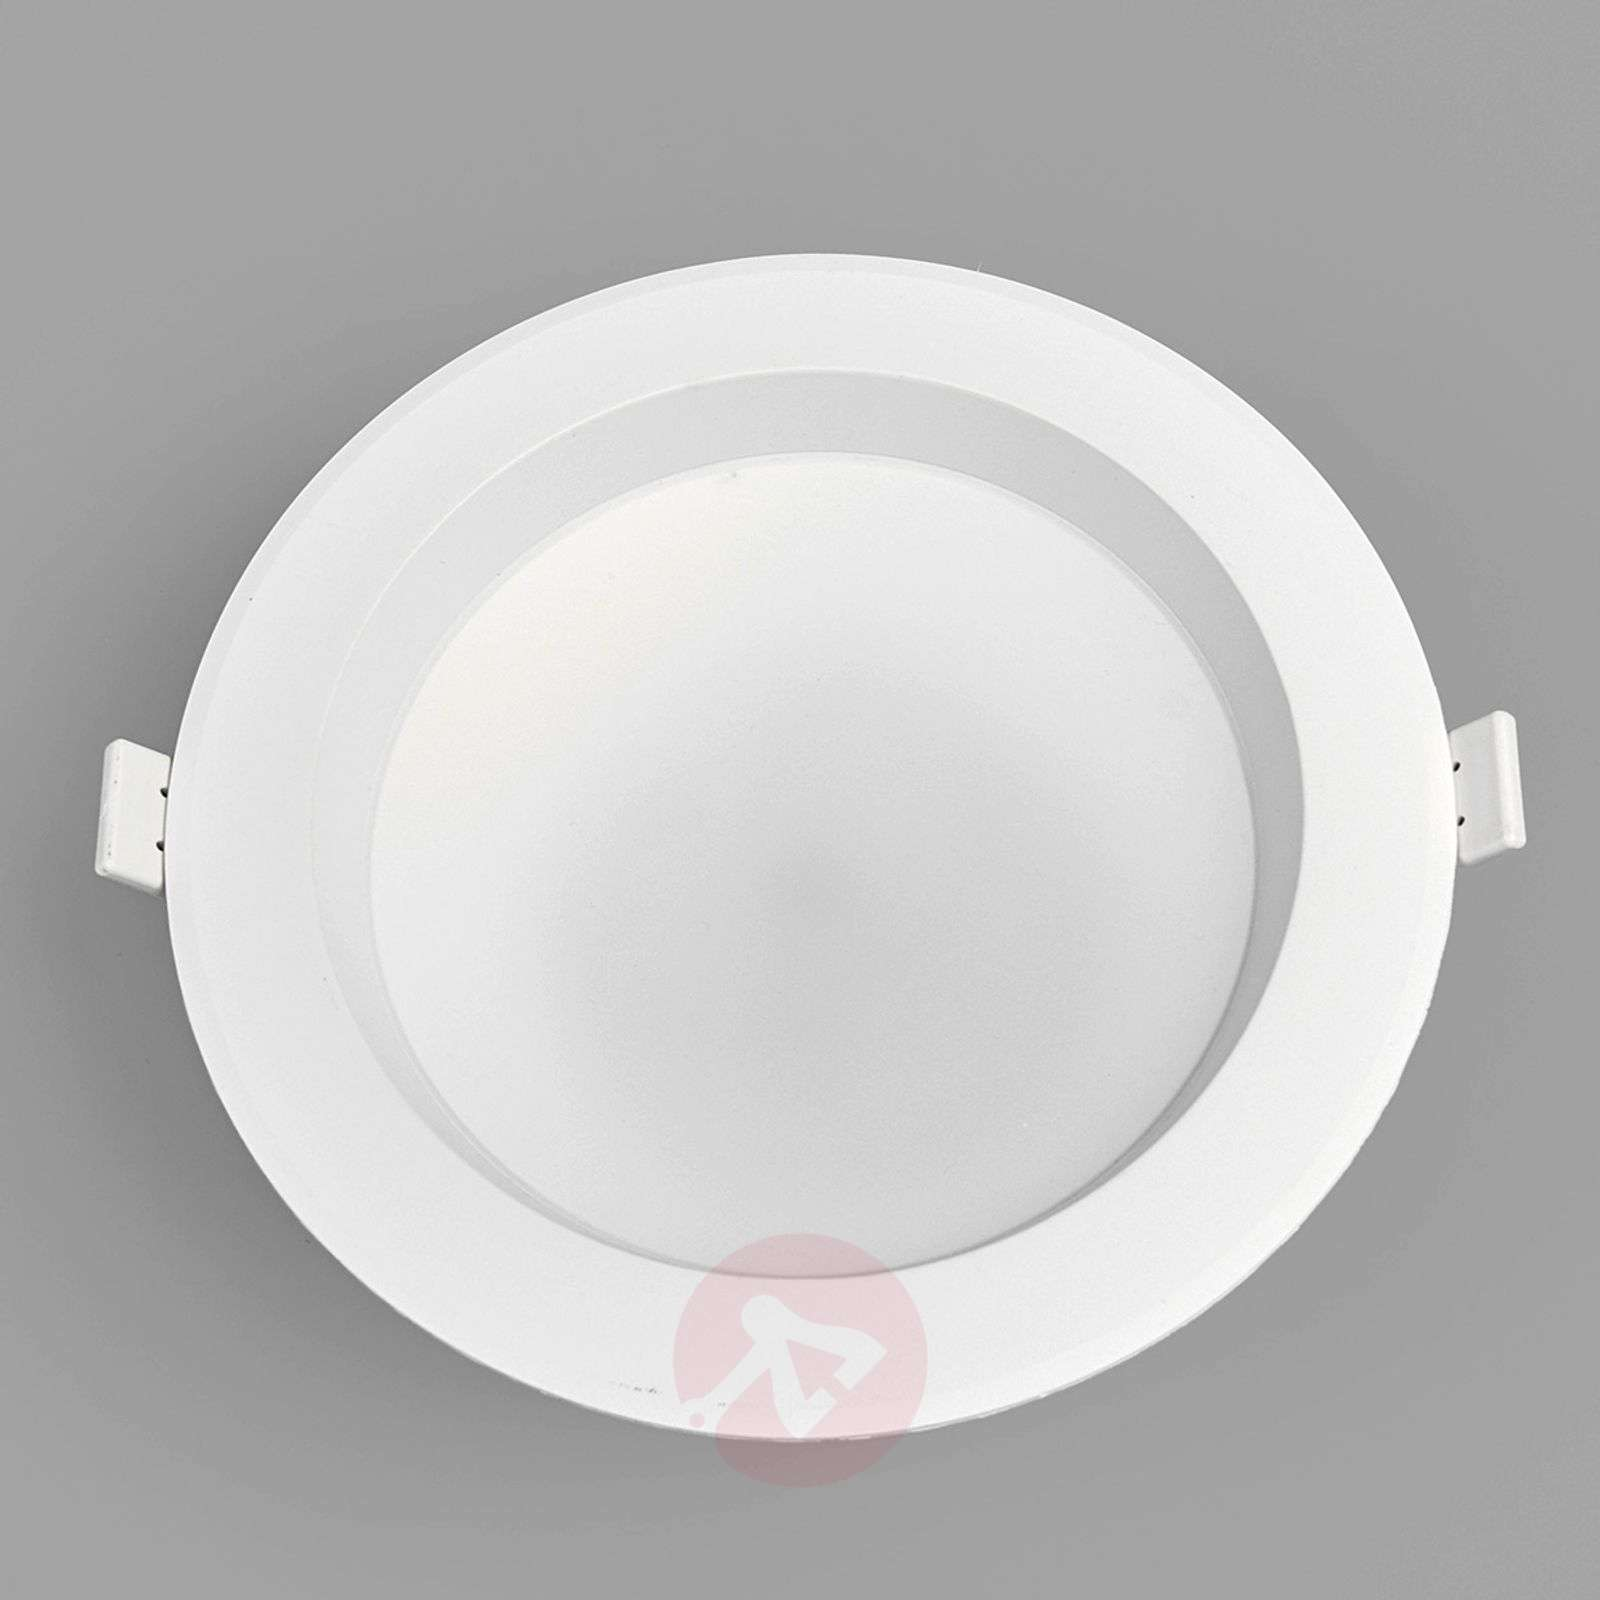 Led recessed ceiling light arian 174 cm 15 w lights led recessed ceiling light arian 174 cm 15 w 9978011 03 aloadofball Image collections